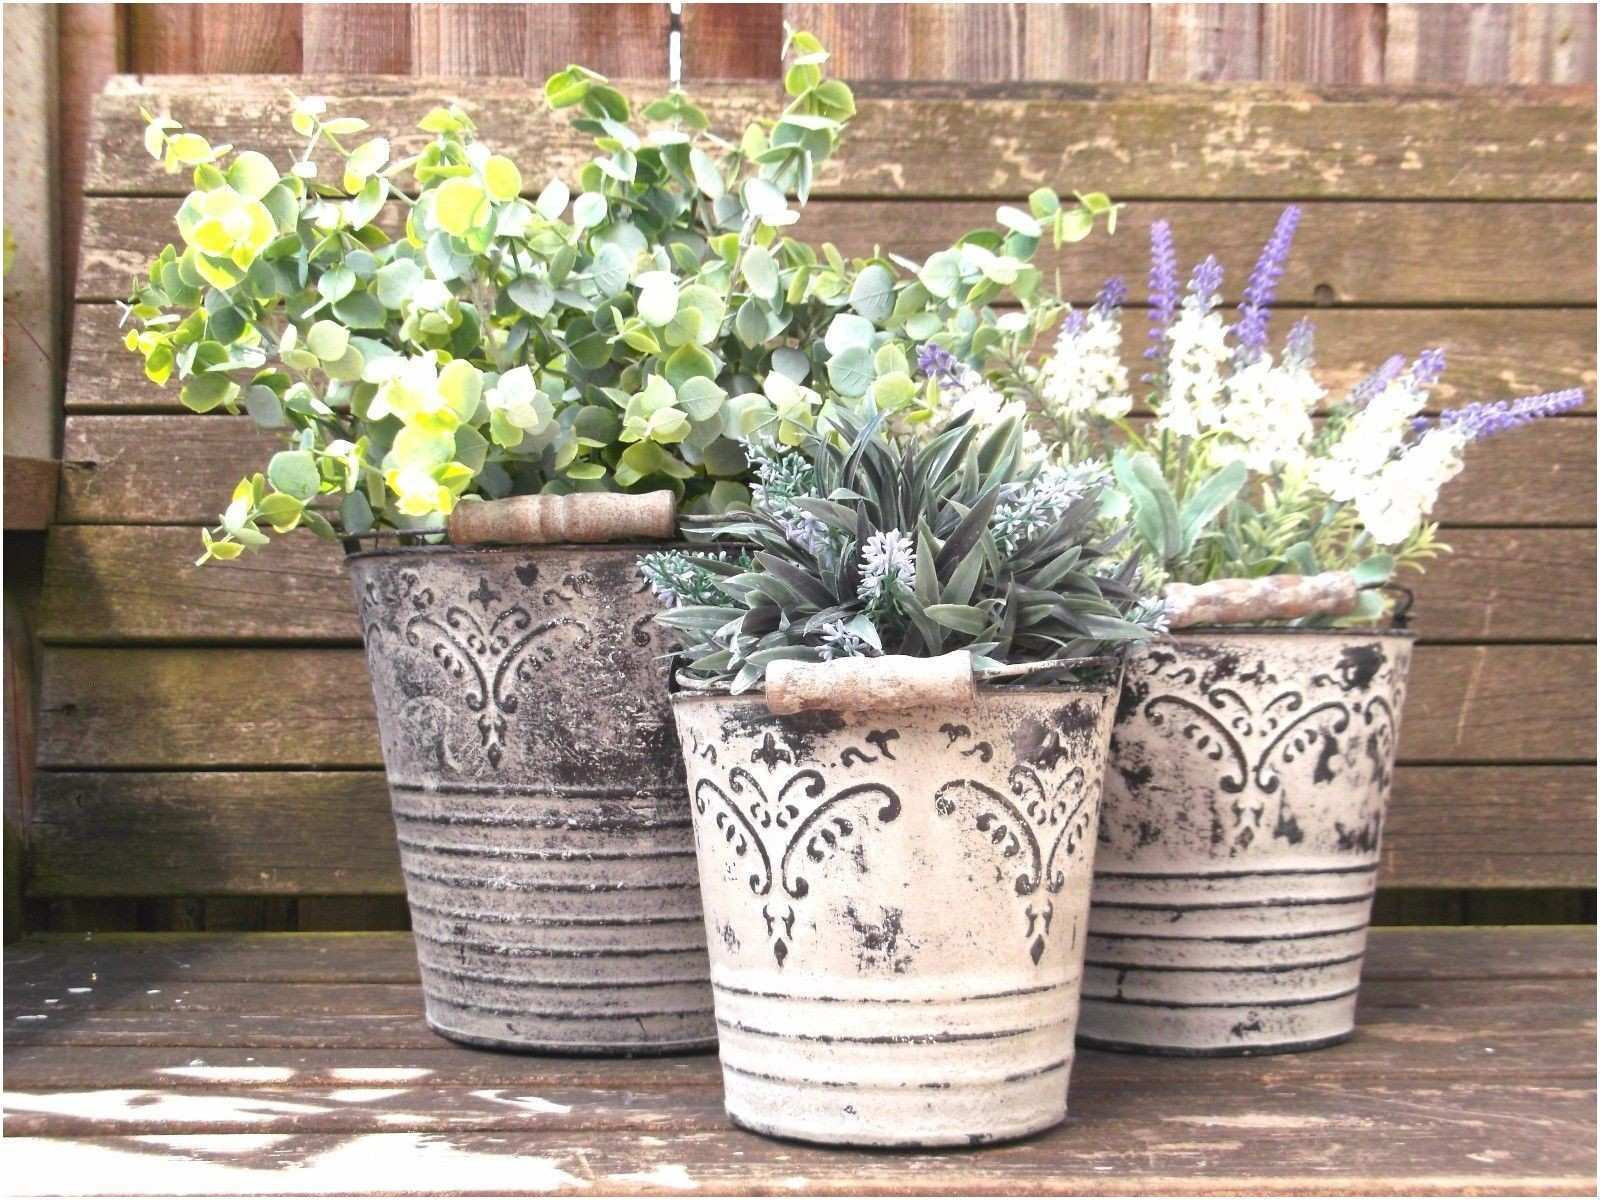 wall hanging bud vase of flower bed inspirational home design outdoor planters luxury h vases for flower bed inspirational home design outdoor planters luxury h vases wall hanging